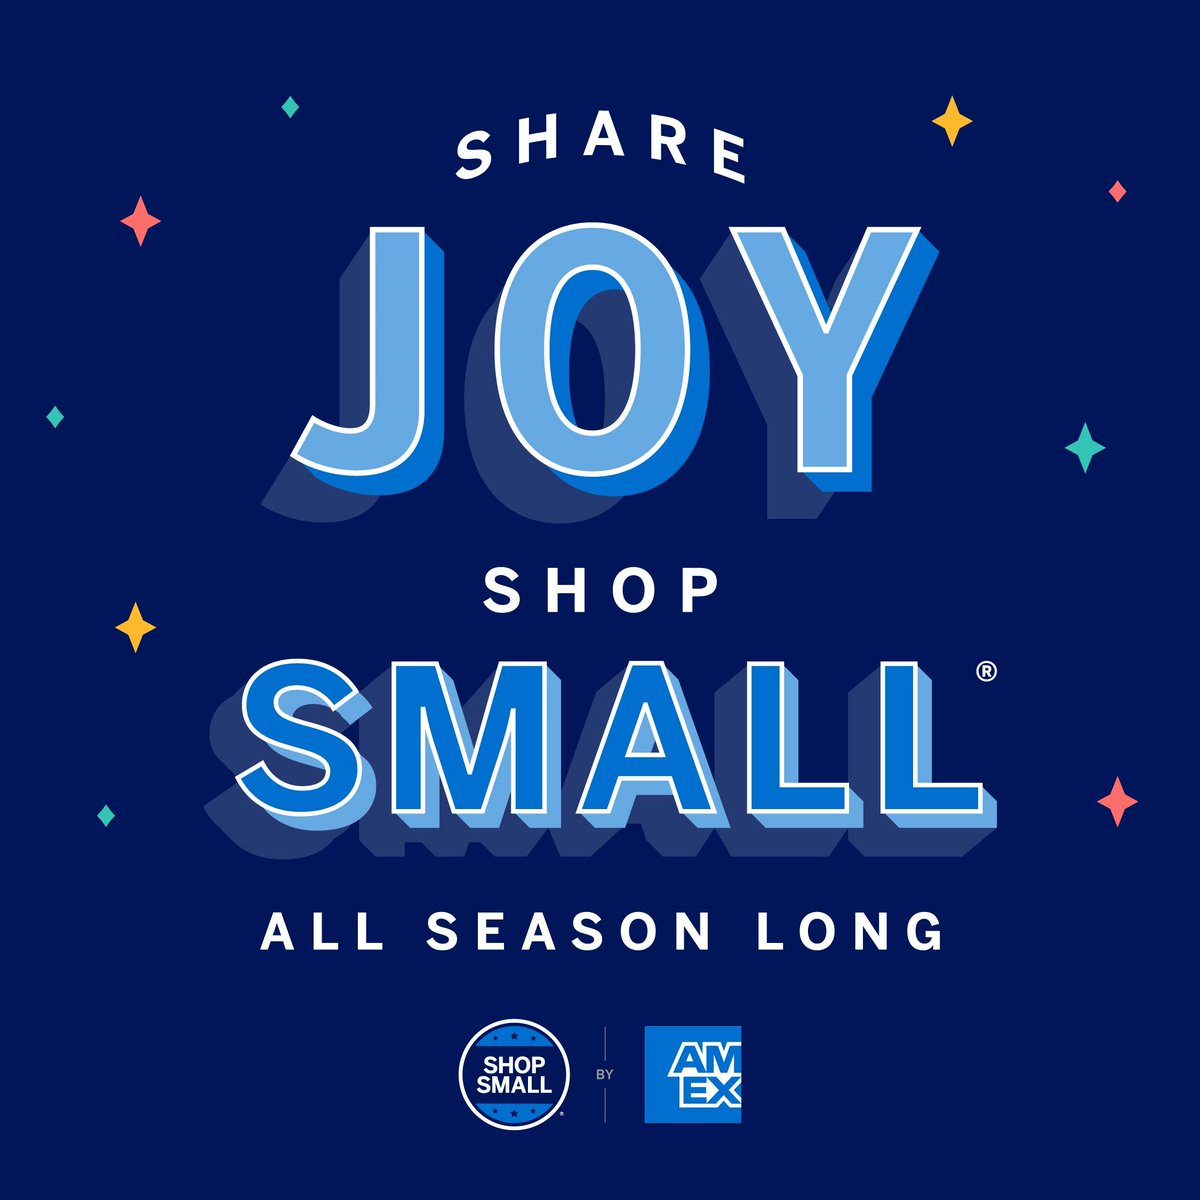 @SHAQ: 'It's #SmallBizSat, a great reminder to show support for our favorite independent businesses every way we can all season long. Shout out the businesses you're supporting! #ShopSmall #AmexAmbassador @AmericanExpre… , see more